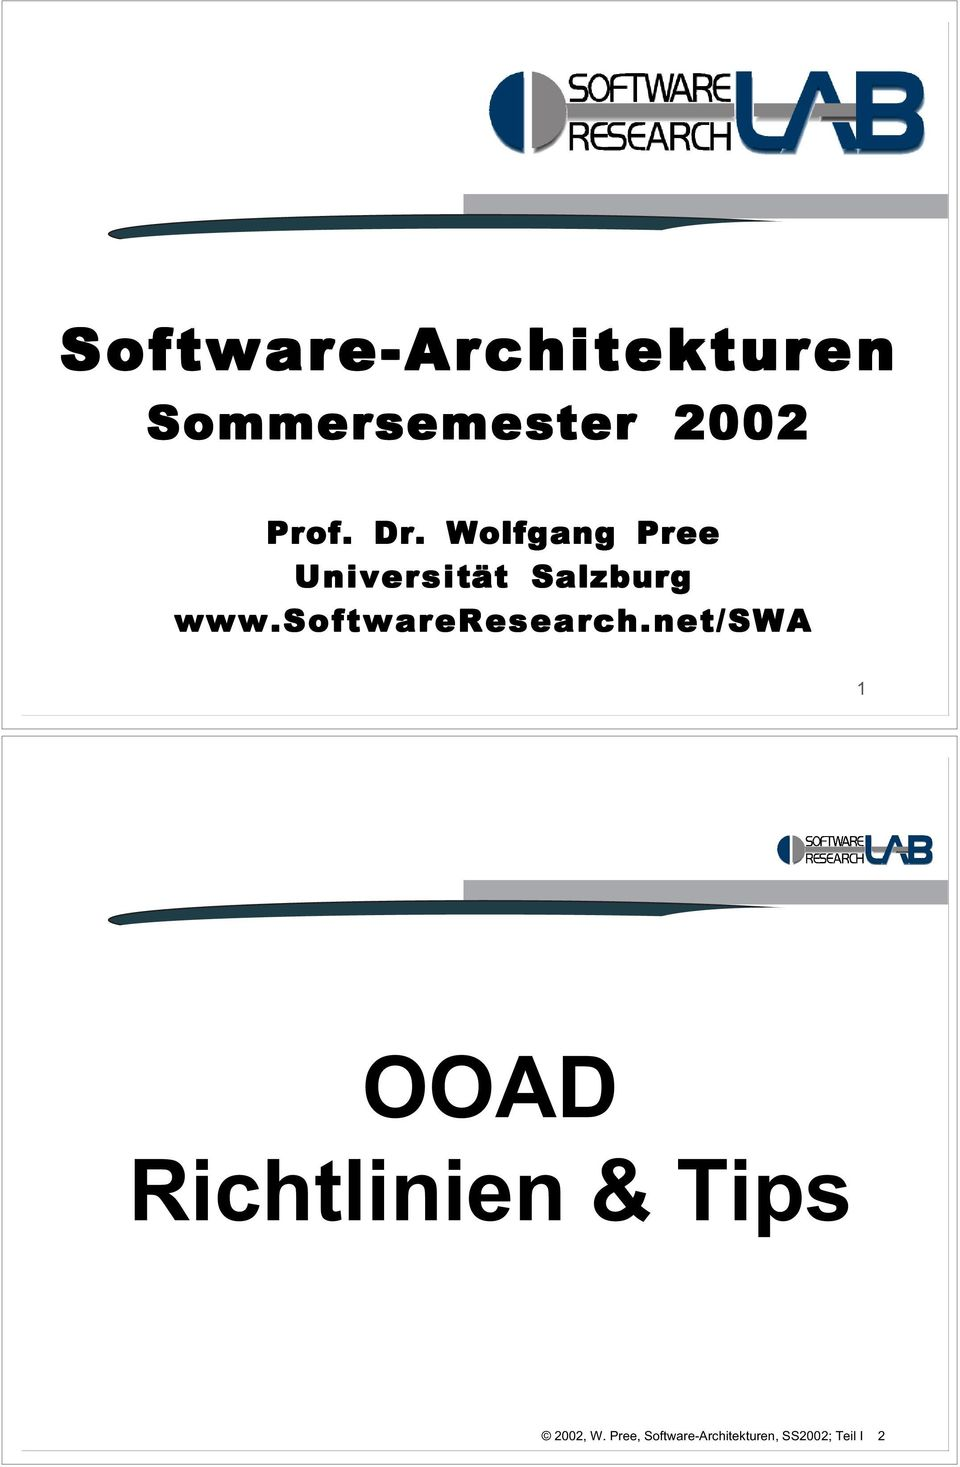 softwareresearch.